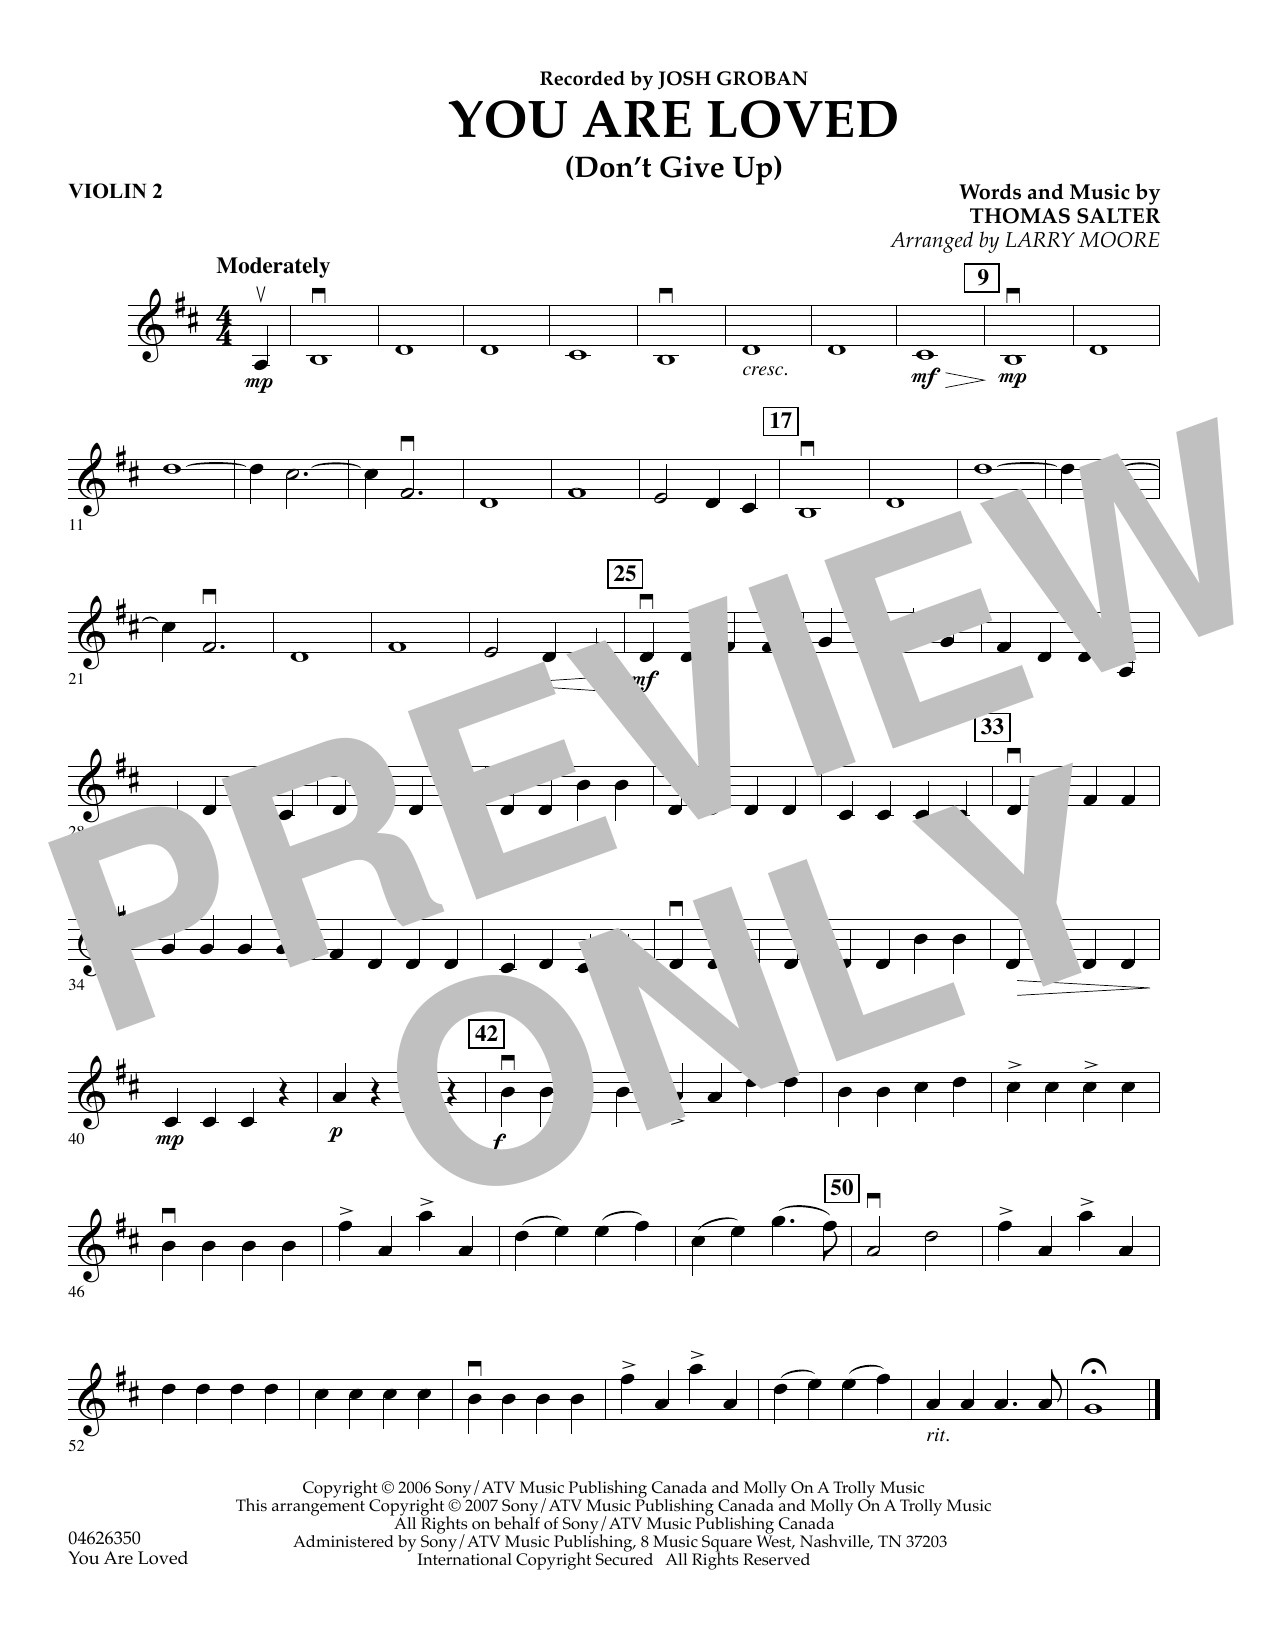 You Are Loved (Don't Give Up) - Violin 2 sheet music